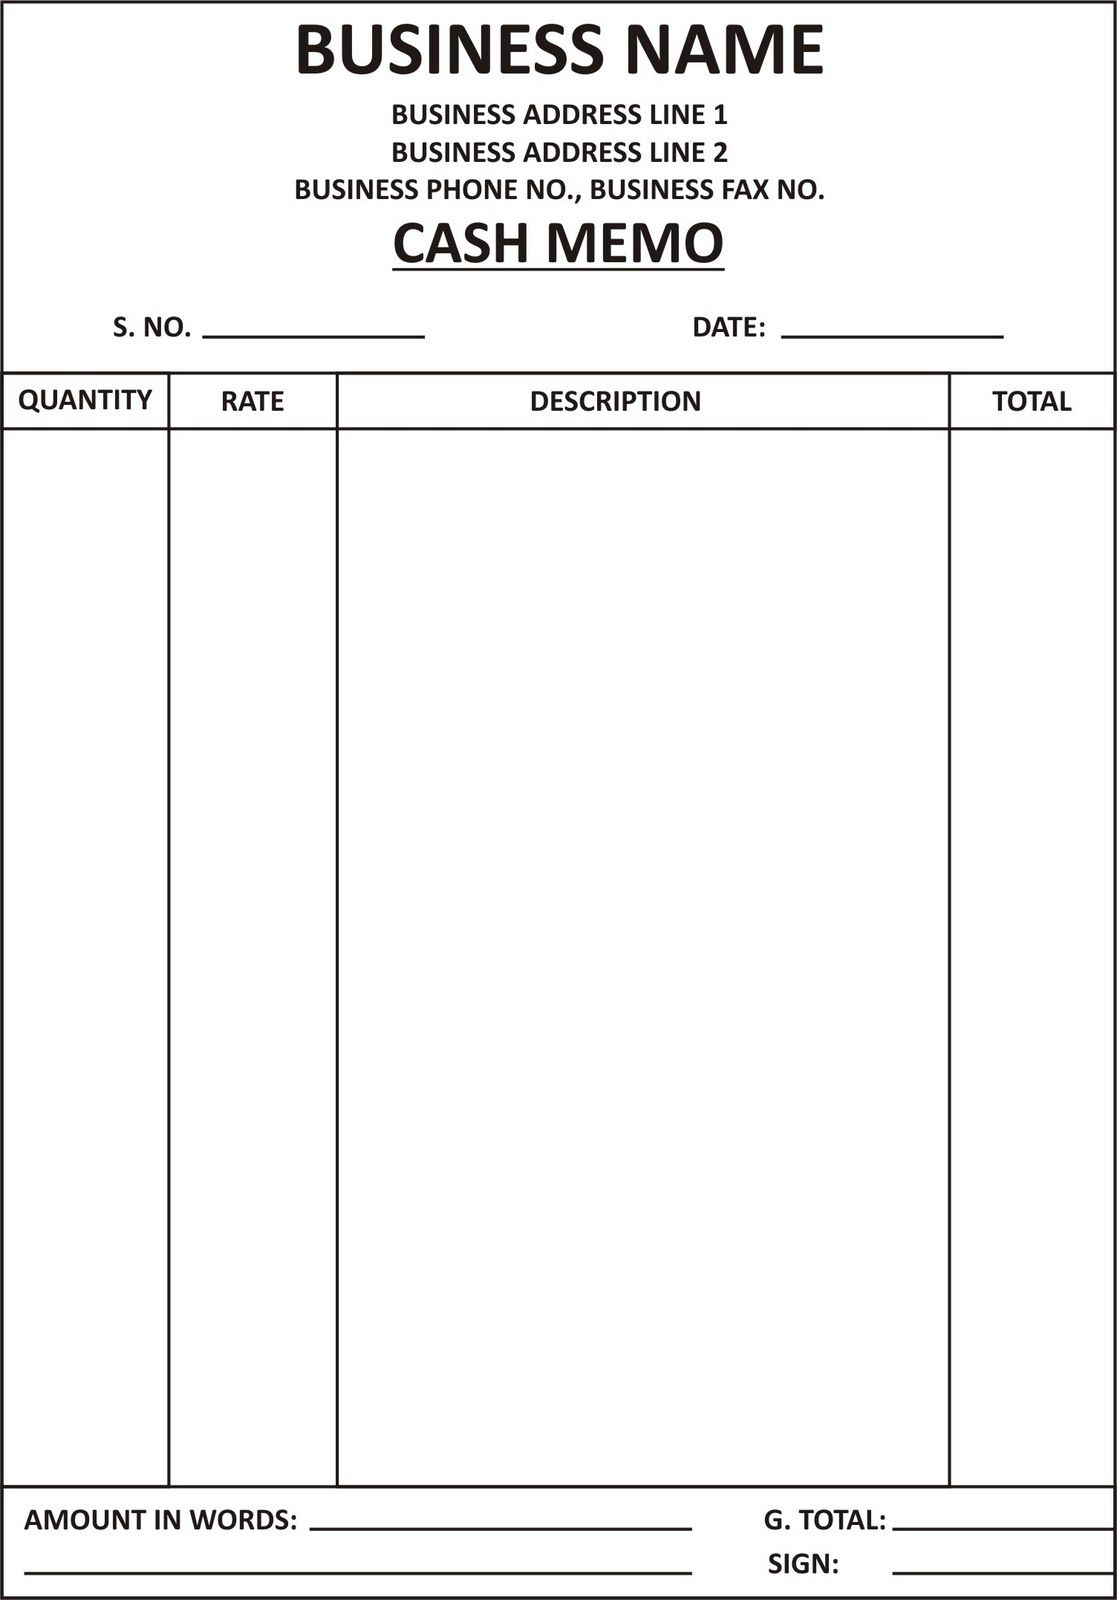 Cash Bill Format Submited Images Pic 2 Fly